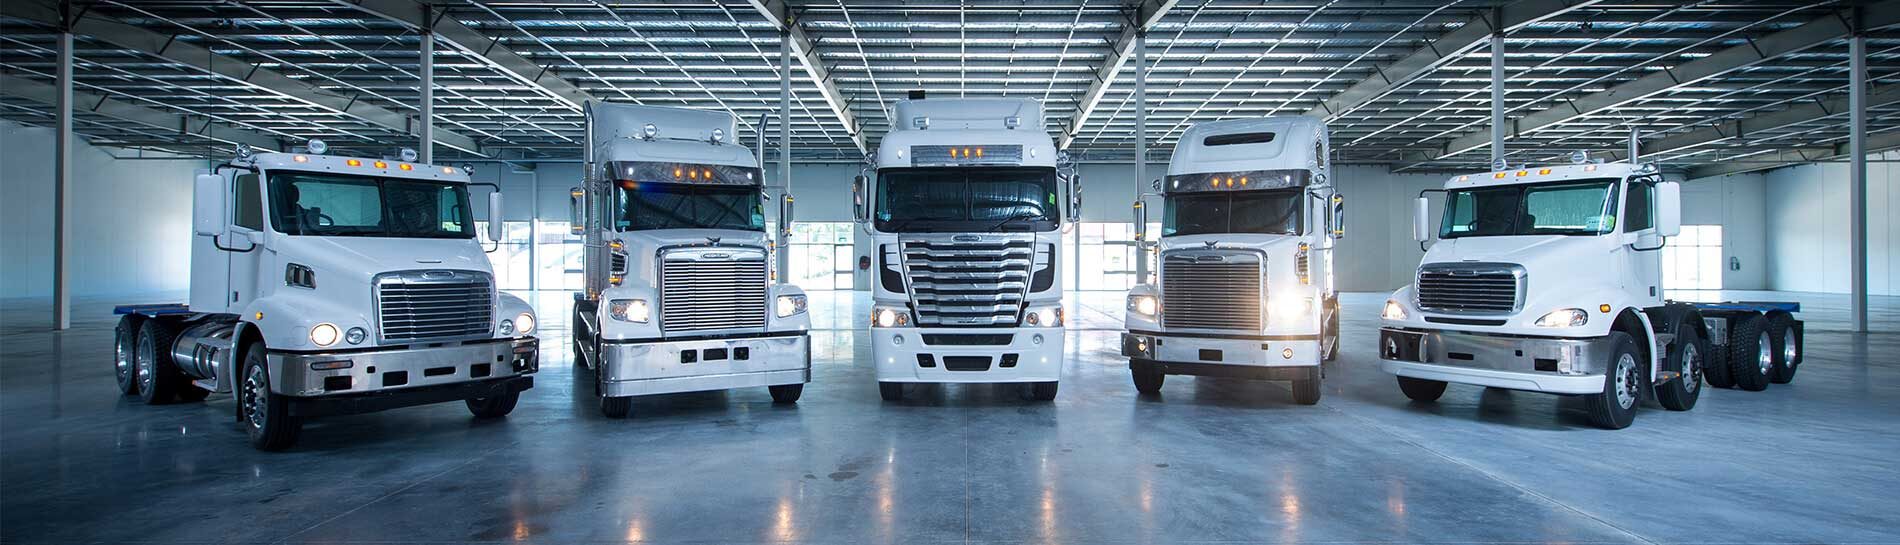 Mavin Truck Centre Mercedes Freightliner Trucks Hino Engine Coolant Blue Sales And Service Kempsey Nsw